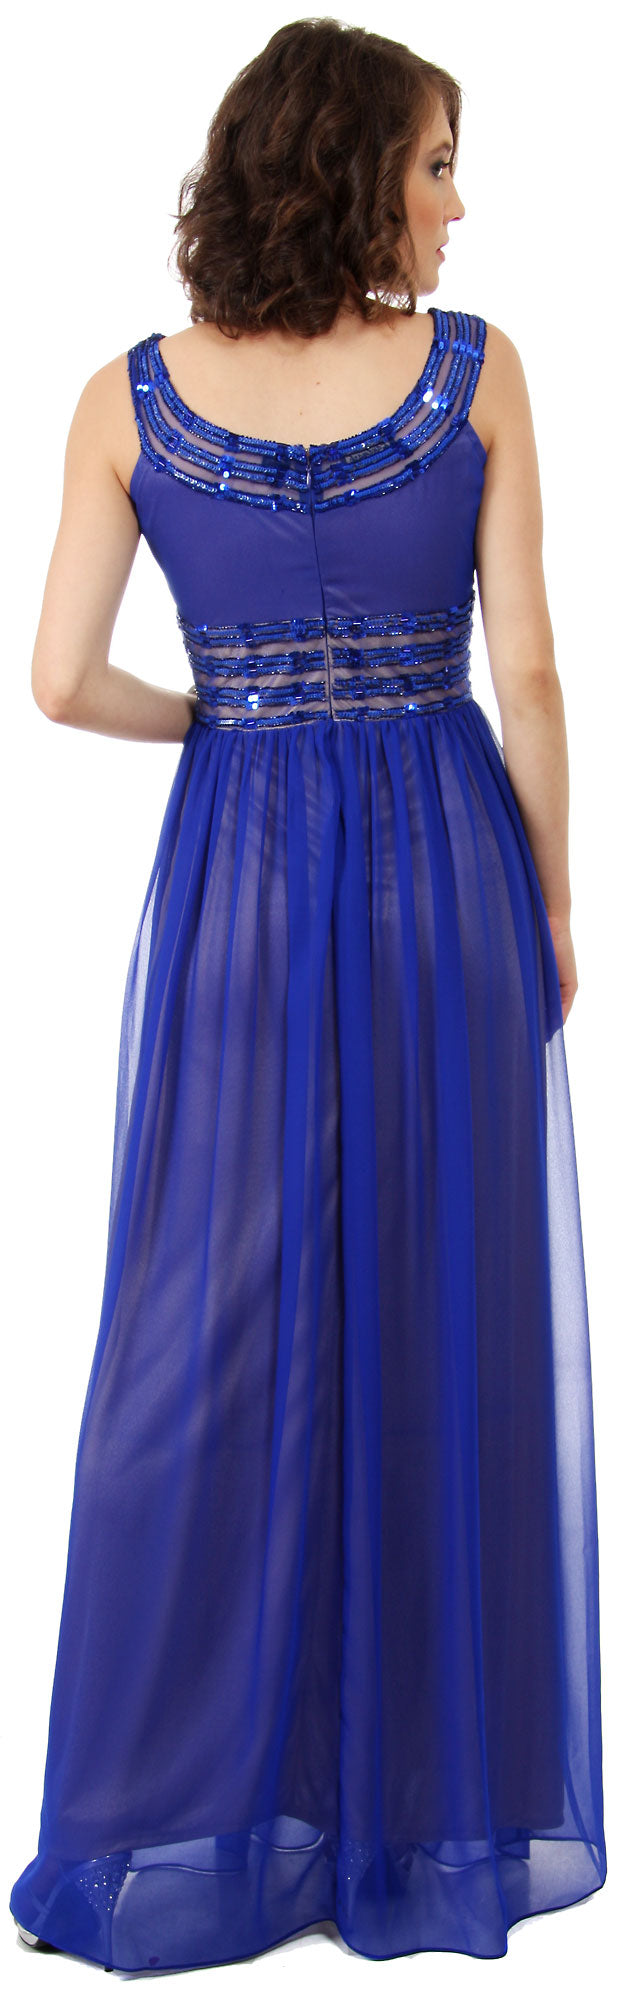 Image of Round Neck Empire Cut Sequined Floor Length Prom Dress back in Royal Blue/Gold